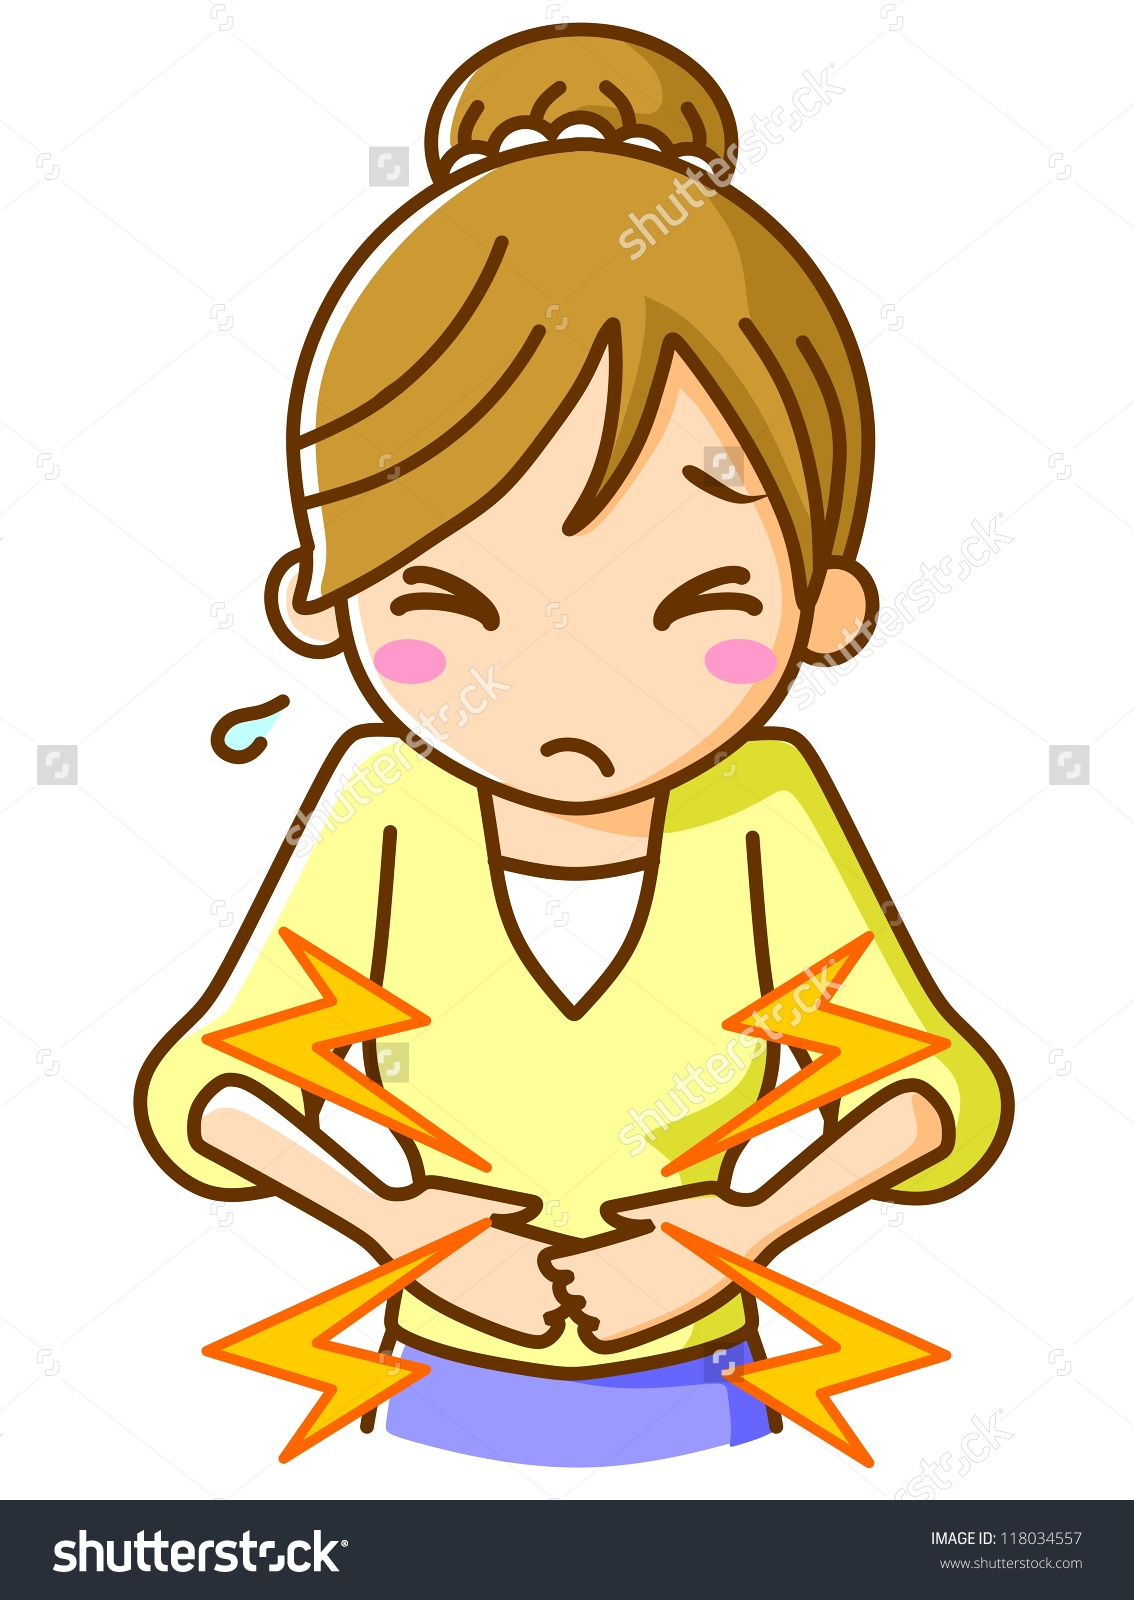 Stomach pain clipart.